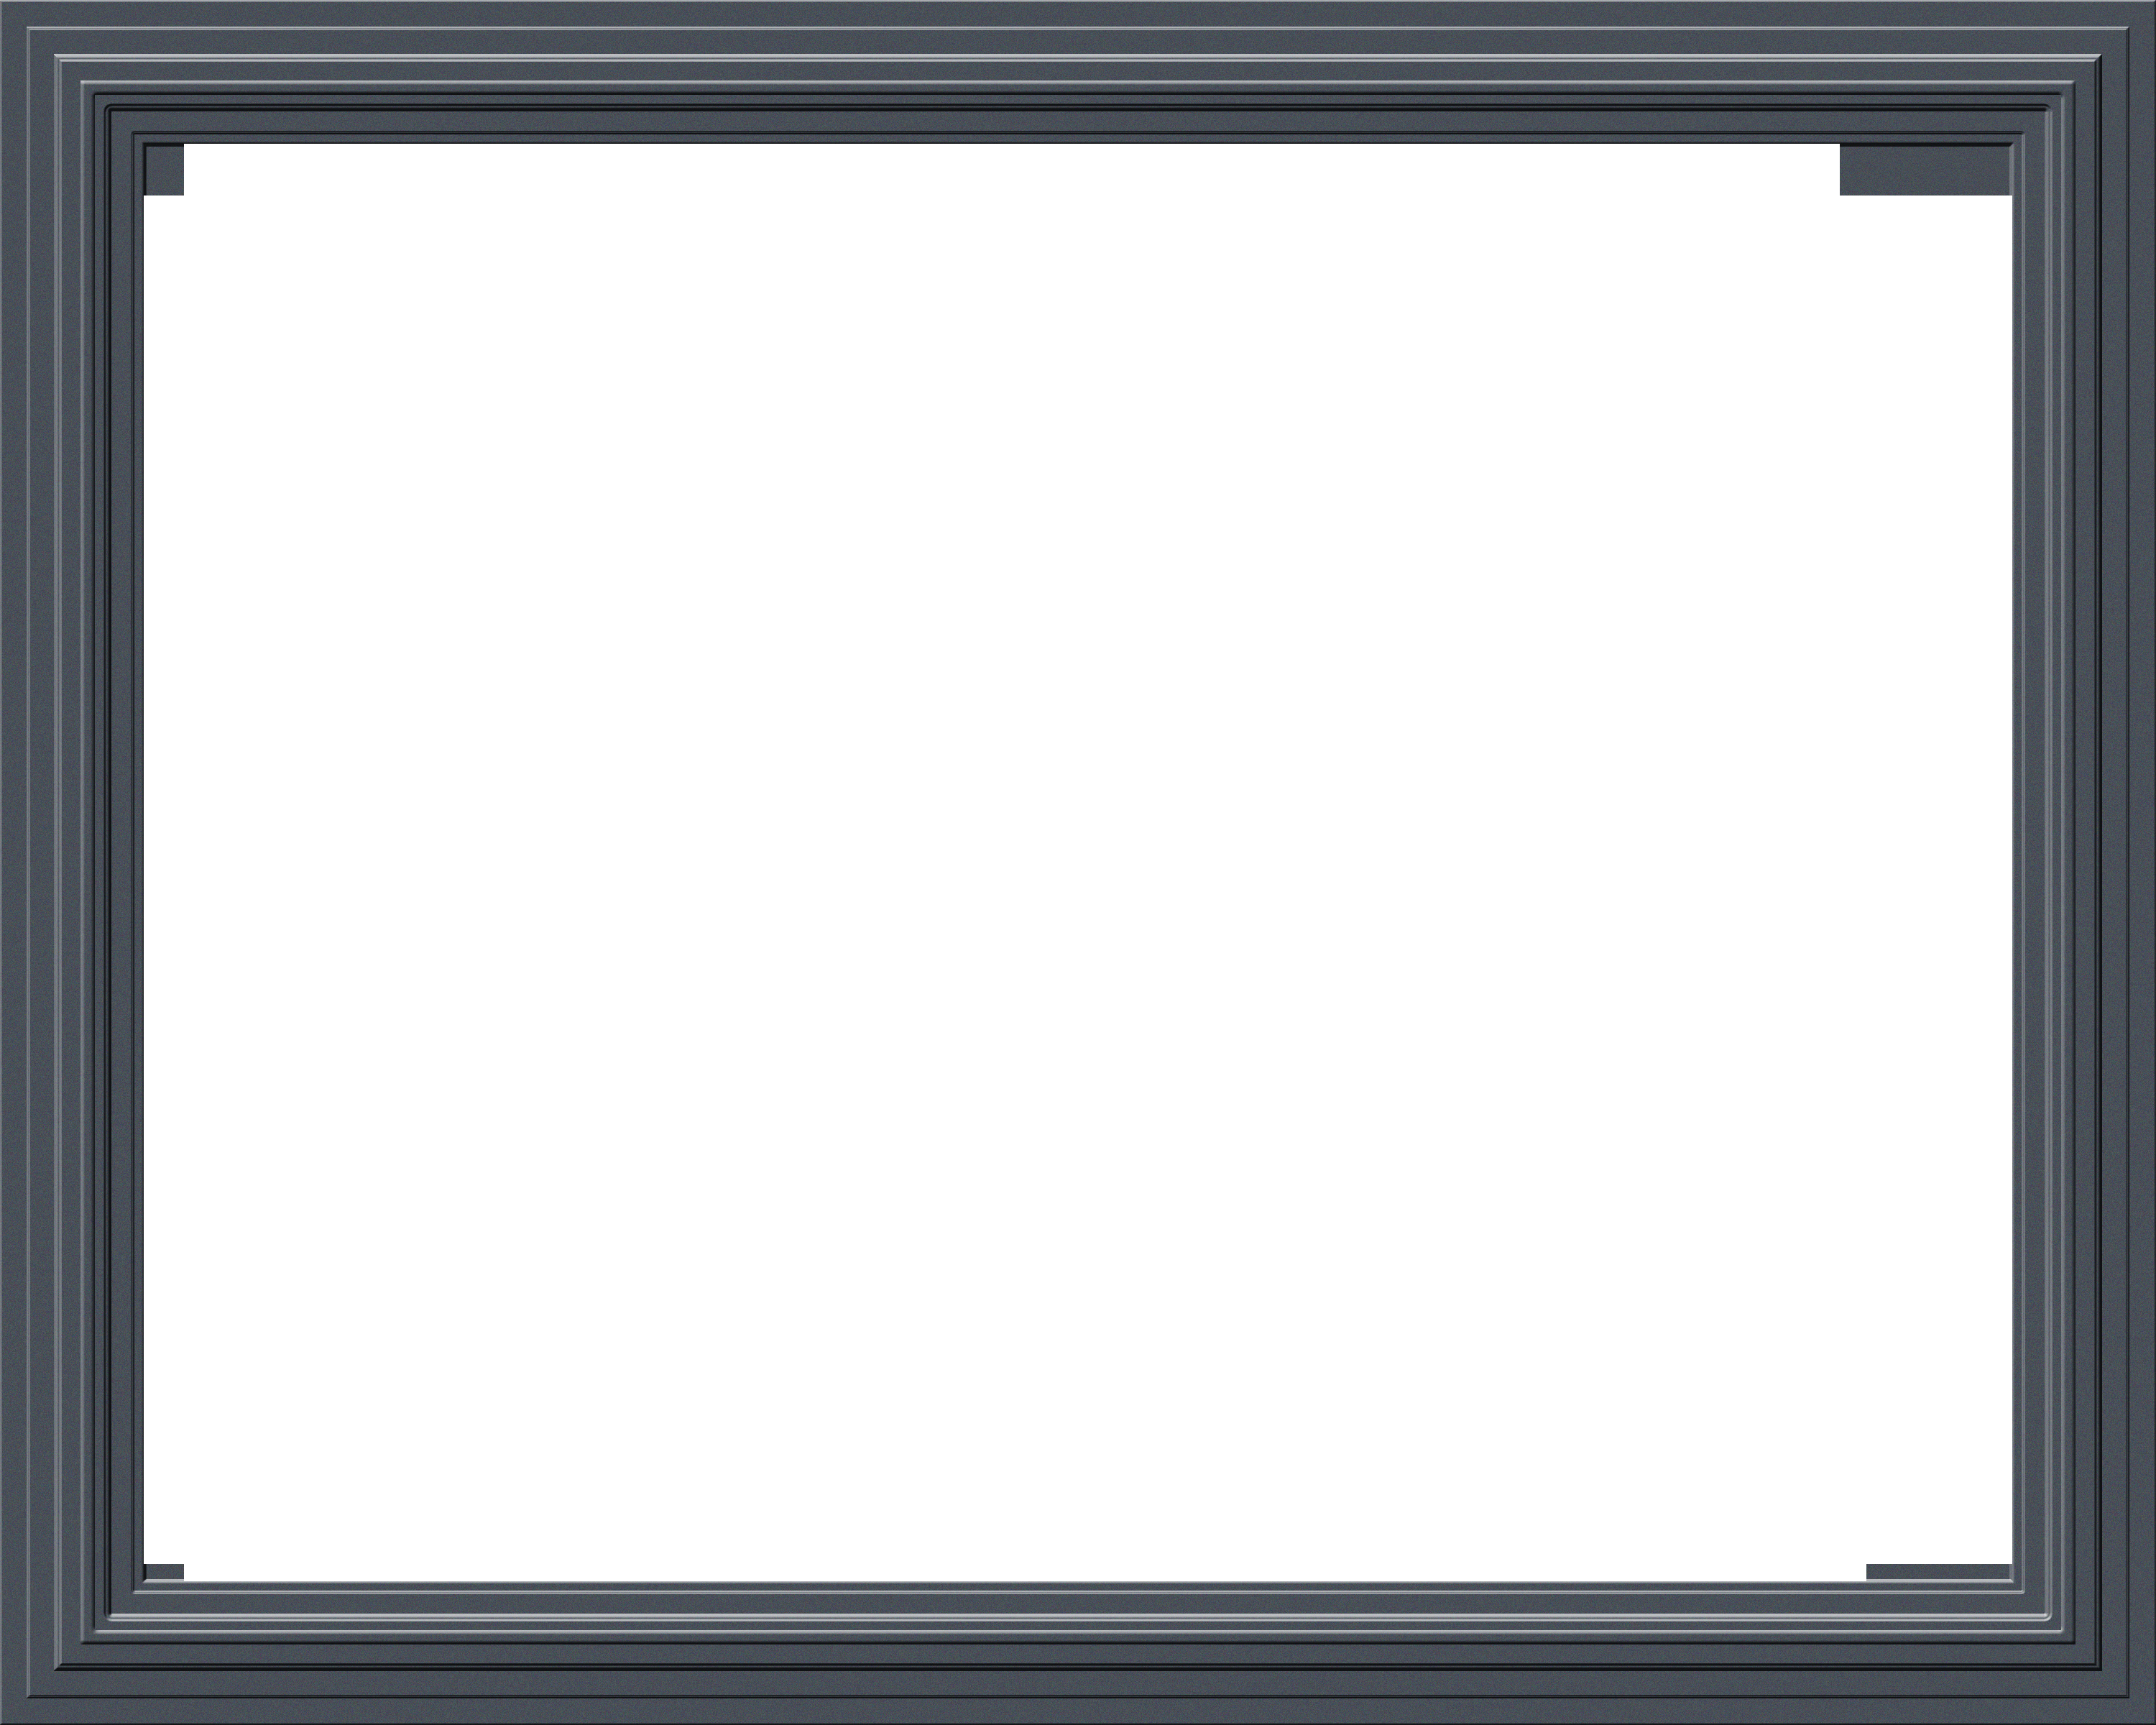 Picture Frame Template Free New 9 Shop Frame Png for Sailing Shop Frames Template Shop Frames and